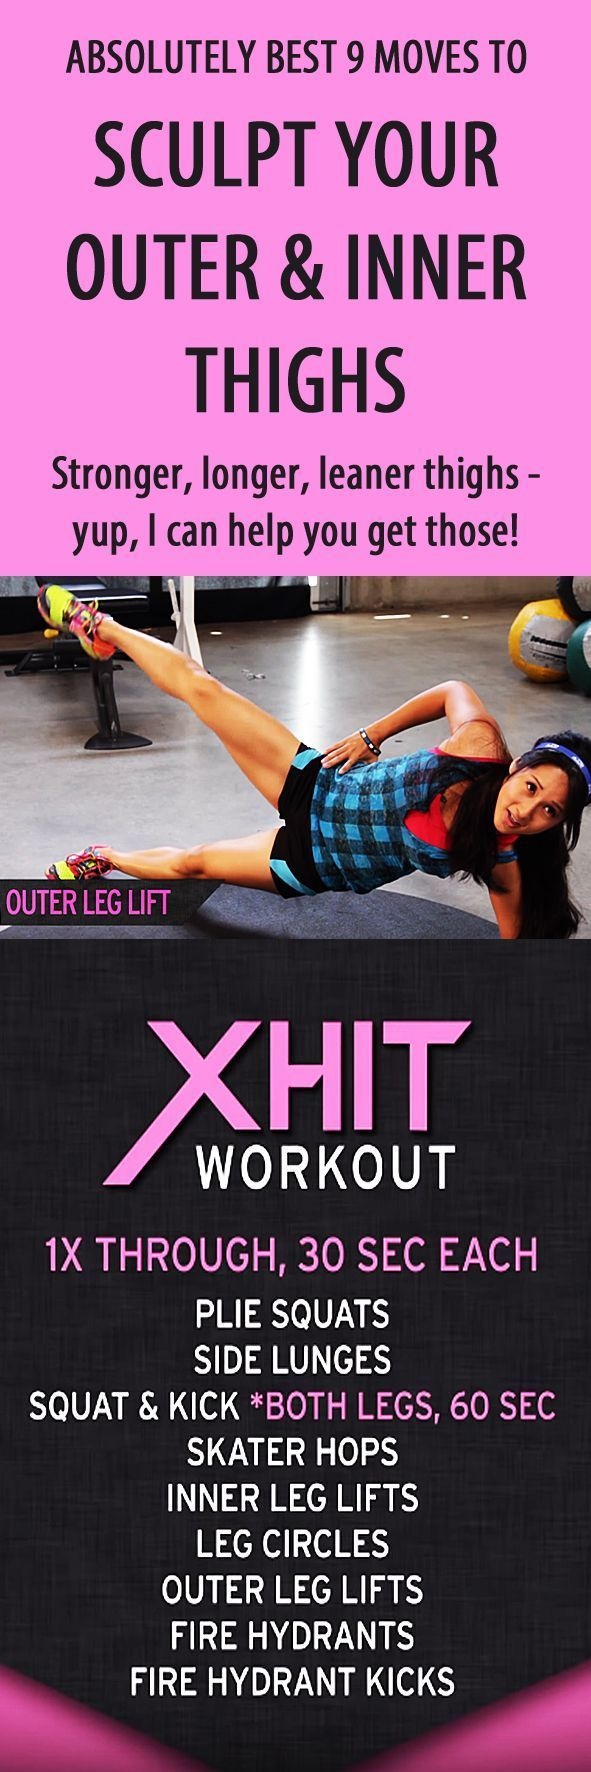 Best 9 moves to sculpt your outer and inner thighs!